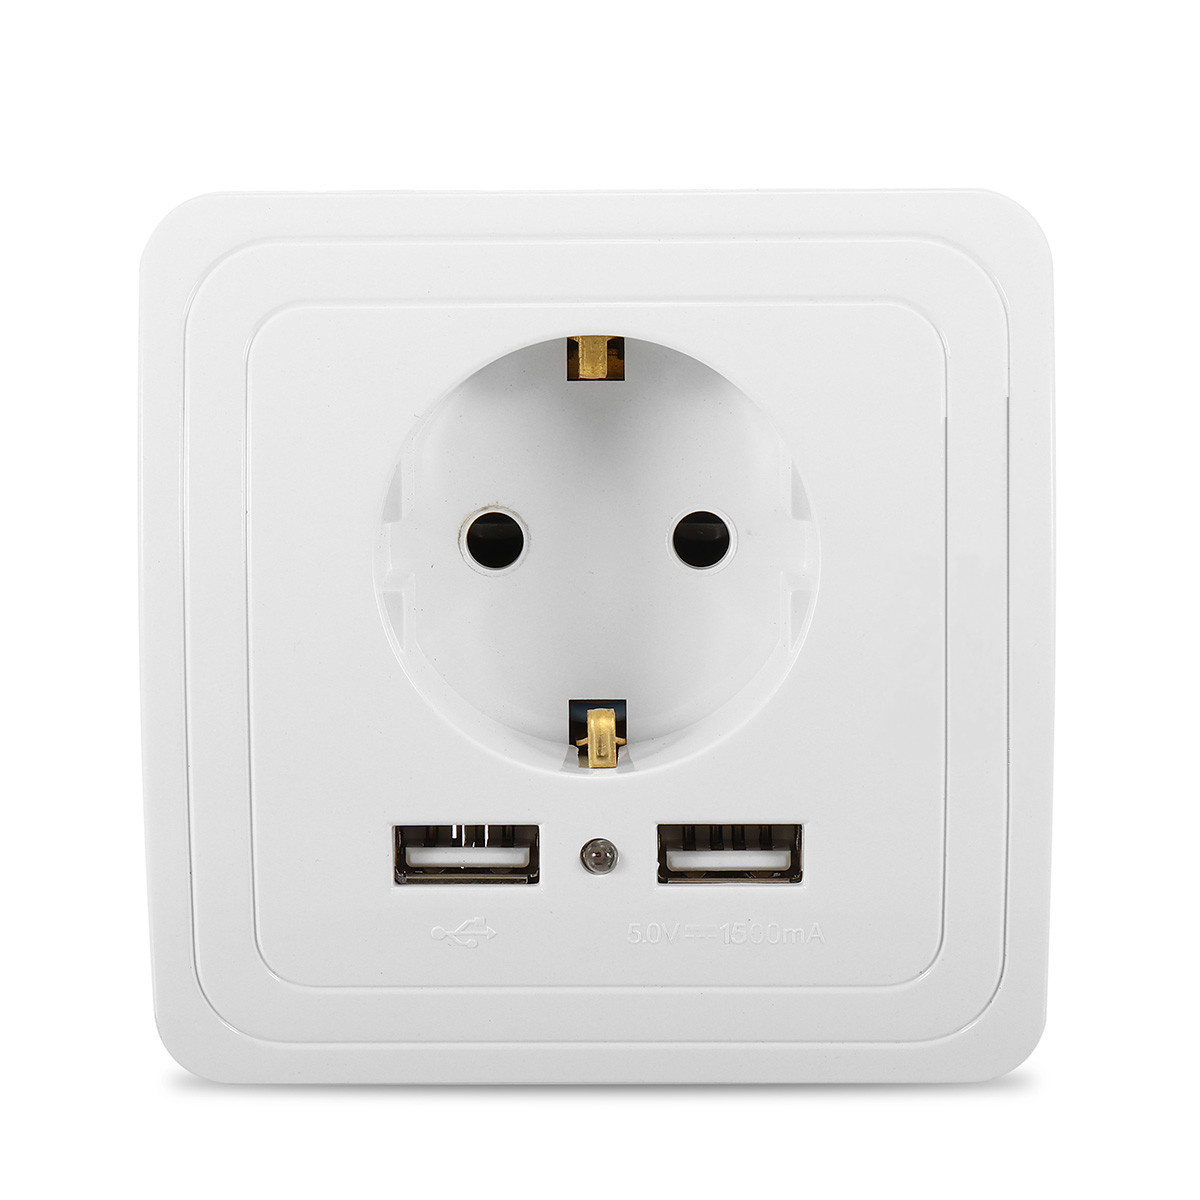 Usb Power Plug 2 1a Dual Usb Ports Wall Charger Power Adapter Socket